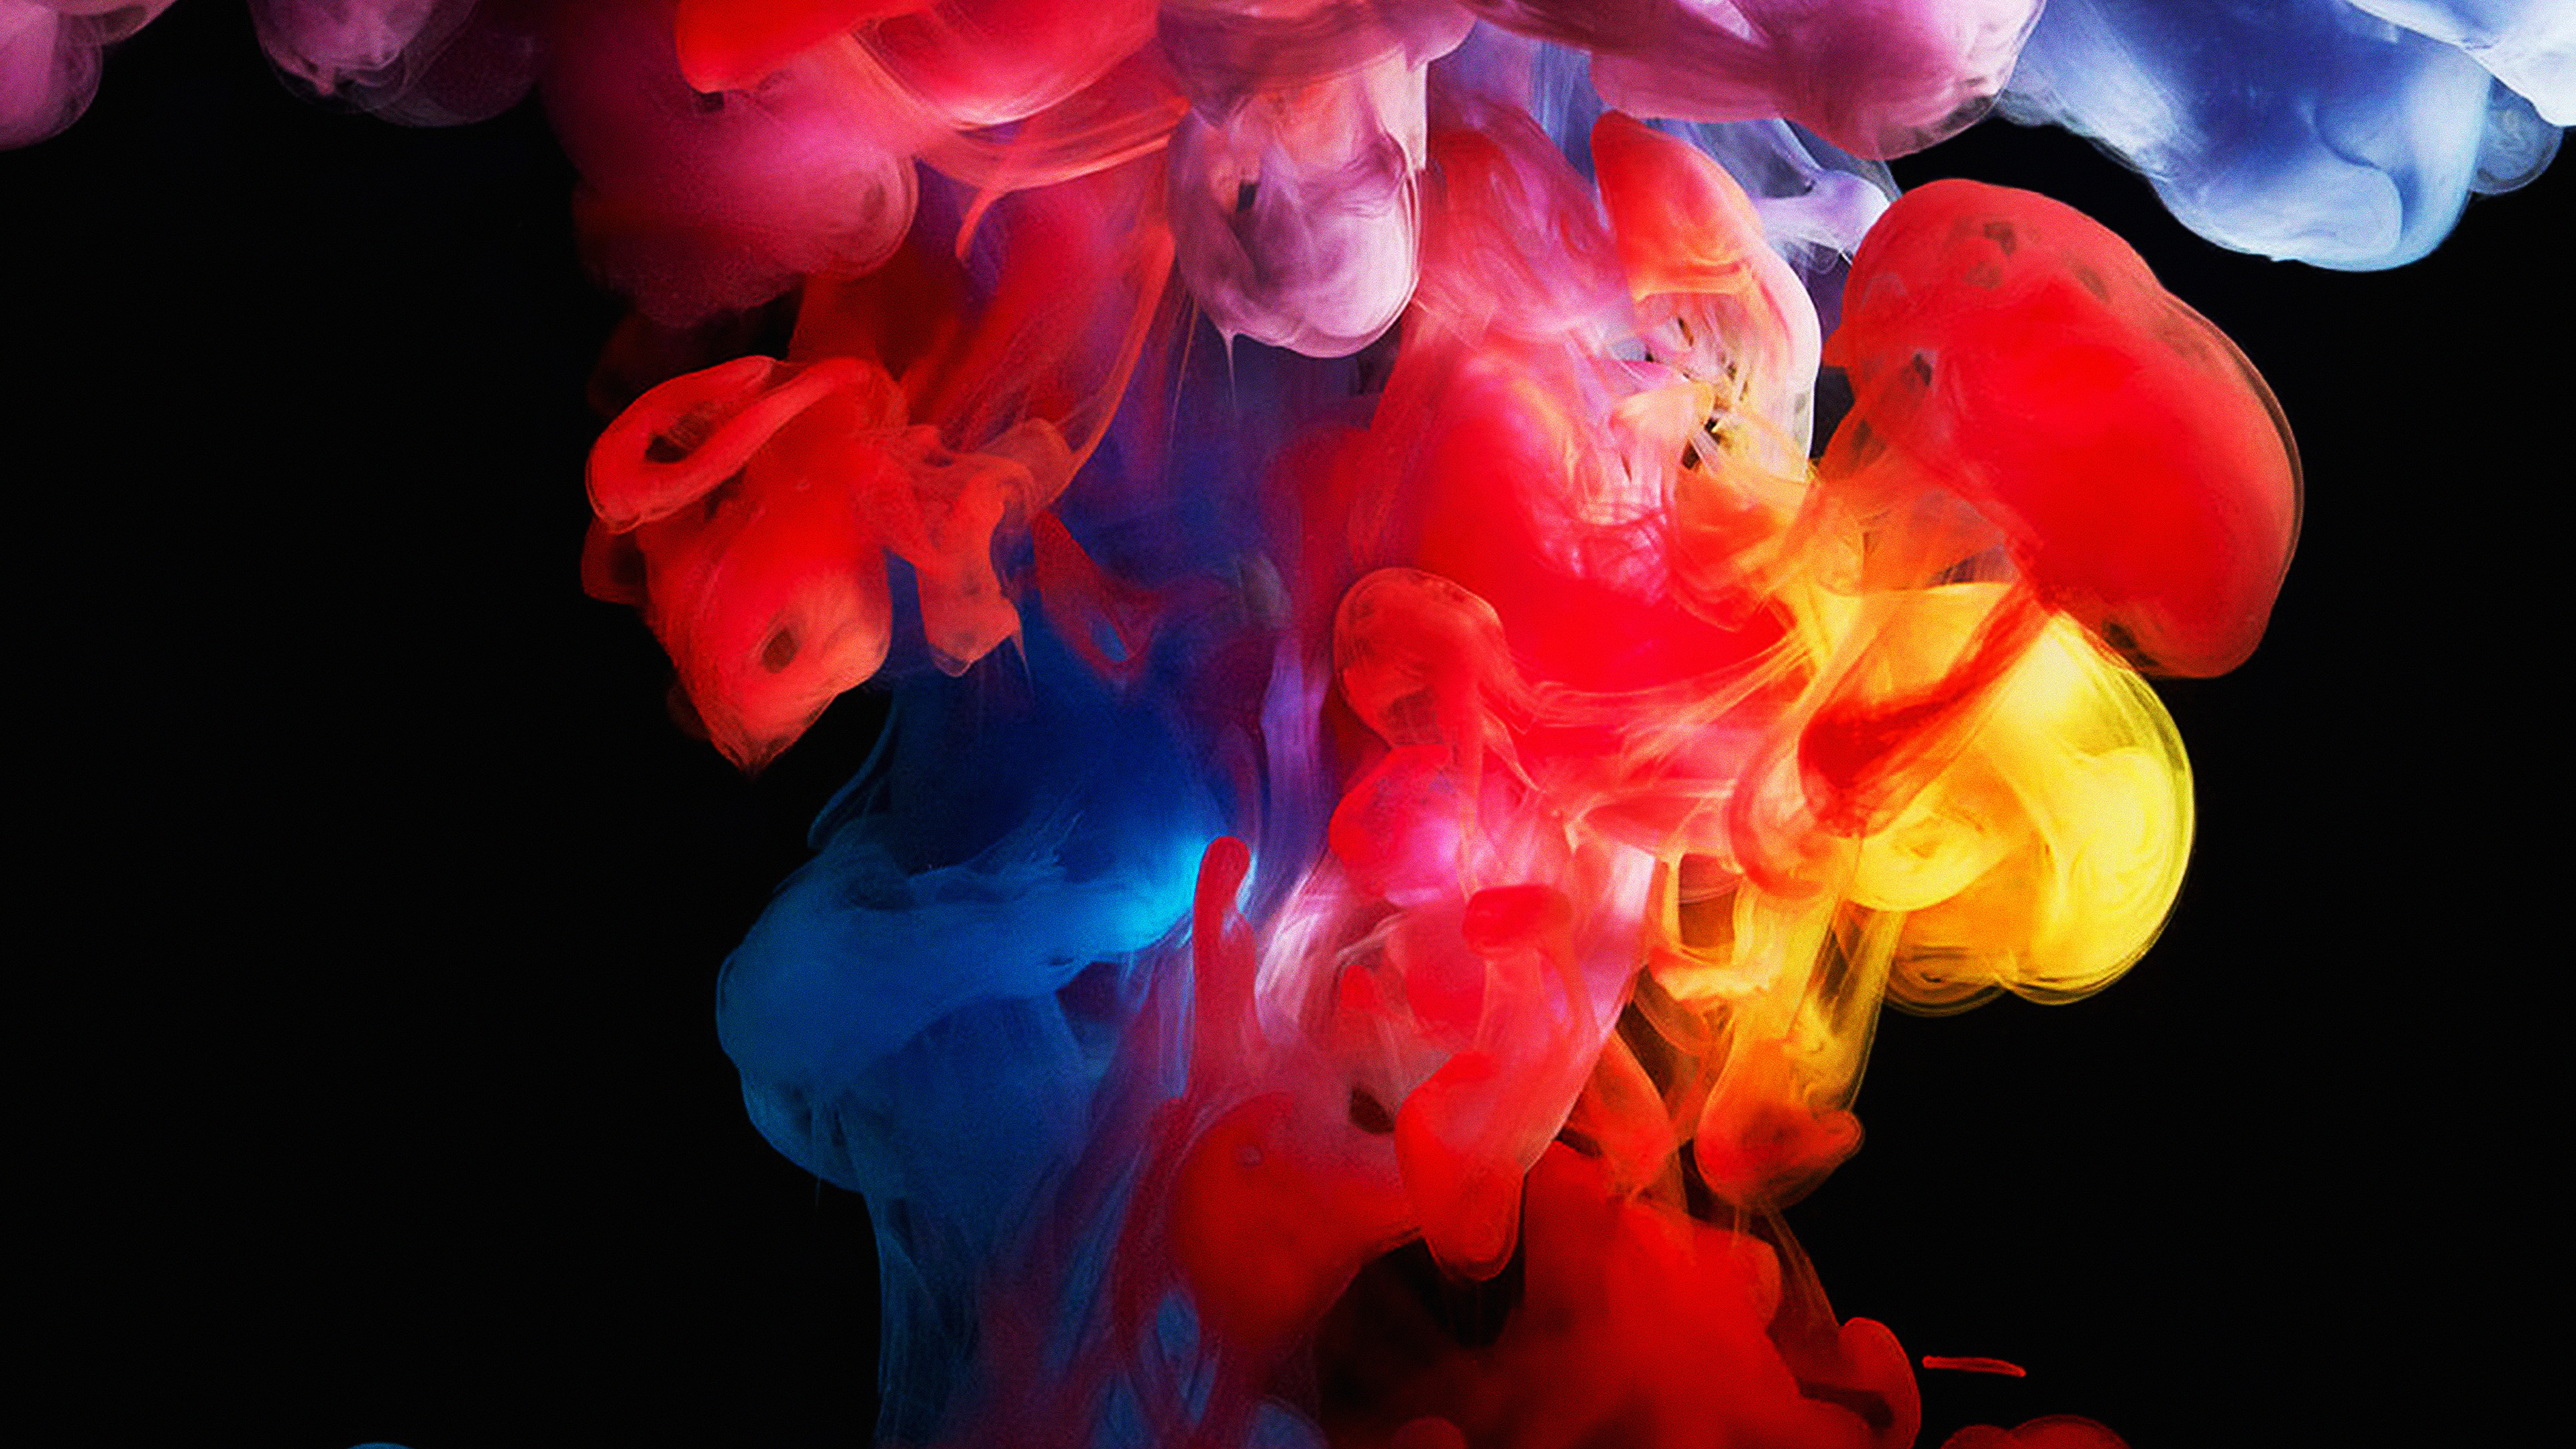 am70-smoke-color-dark-abstract-fog-art-illust - Papers.co